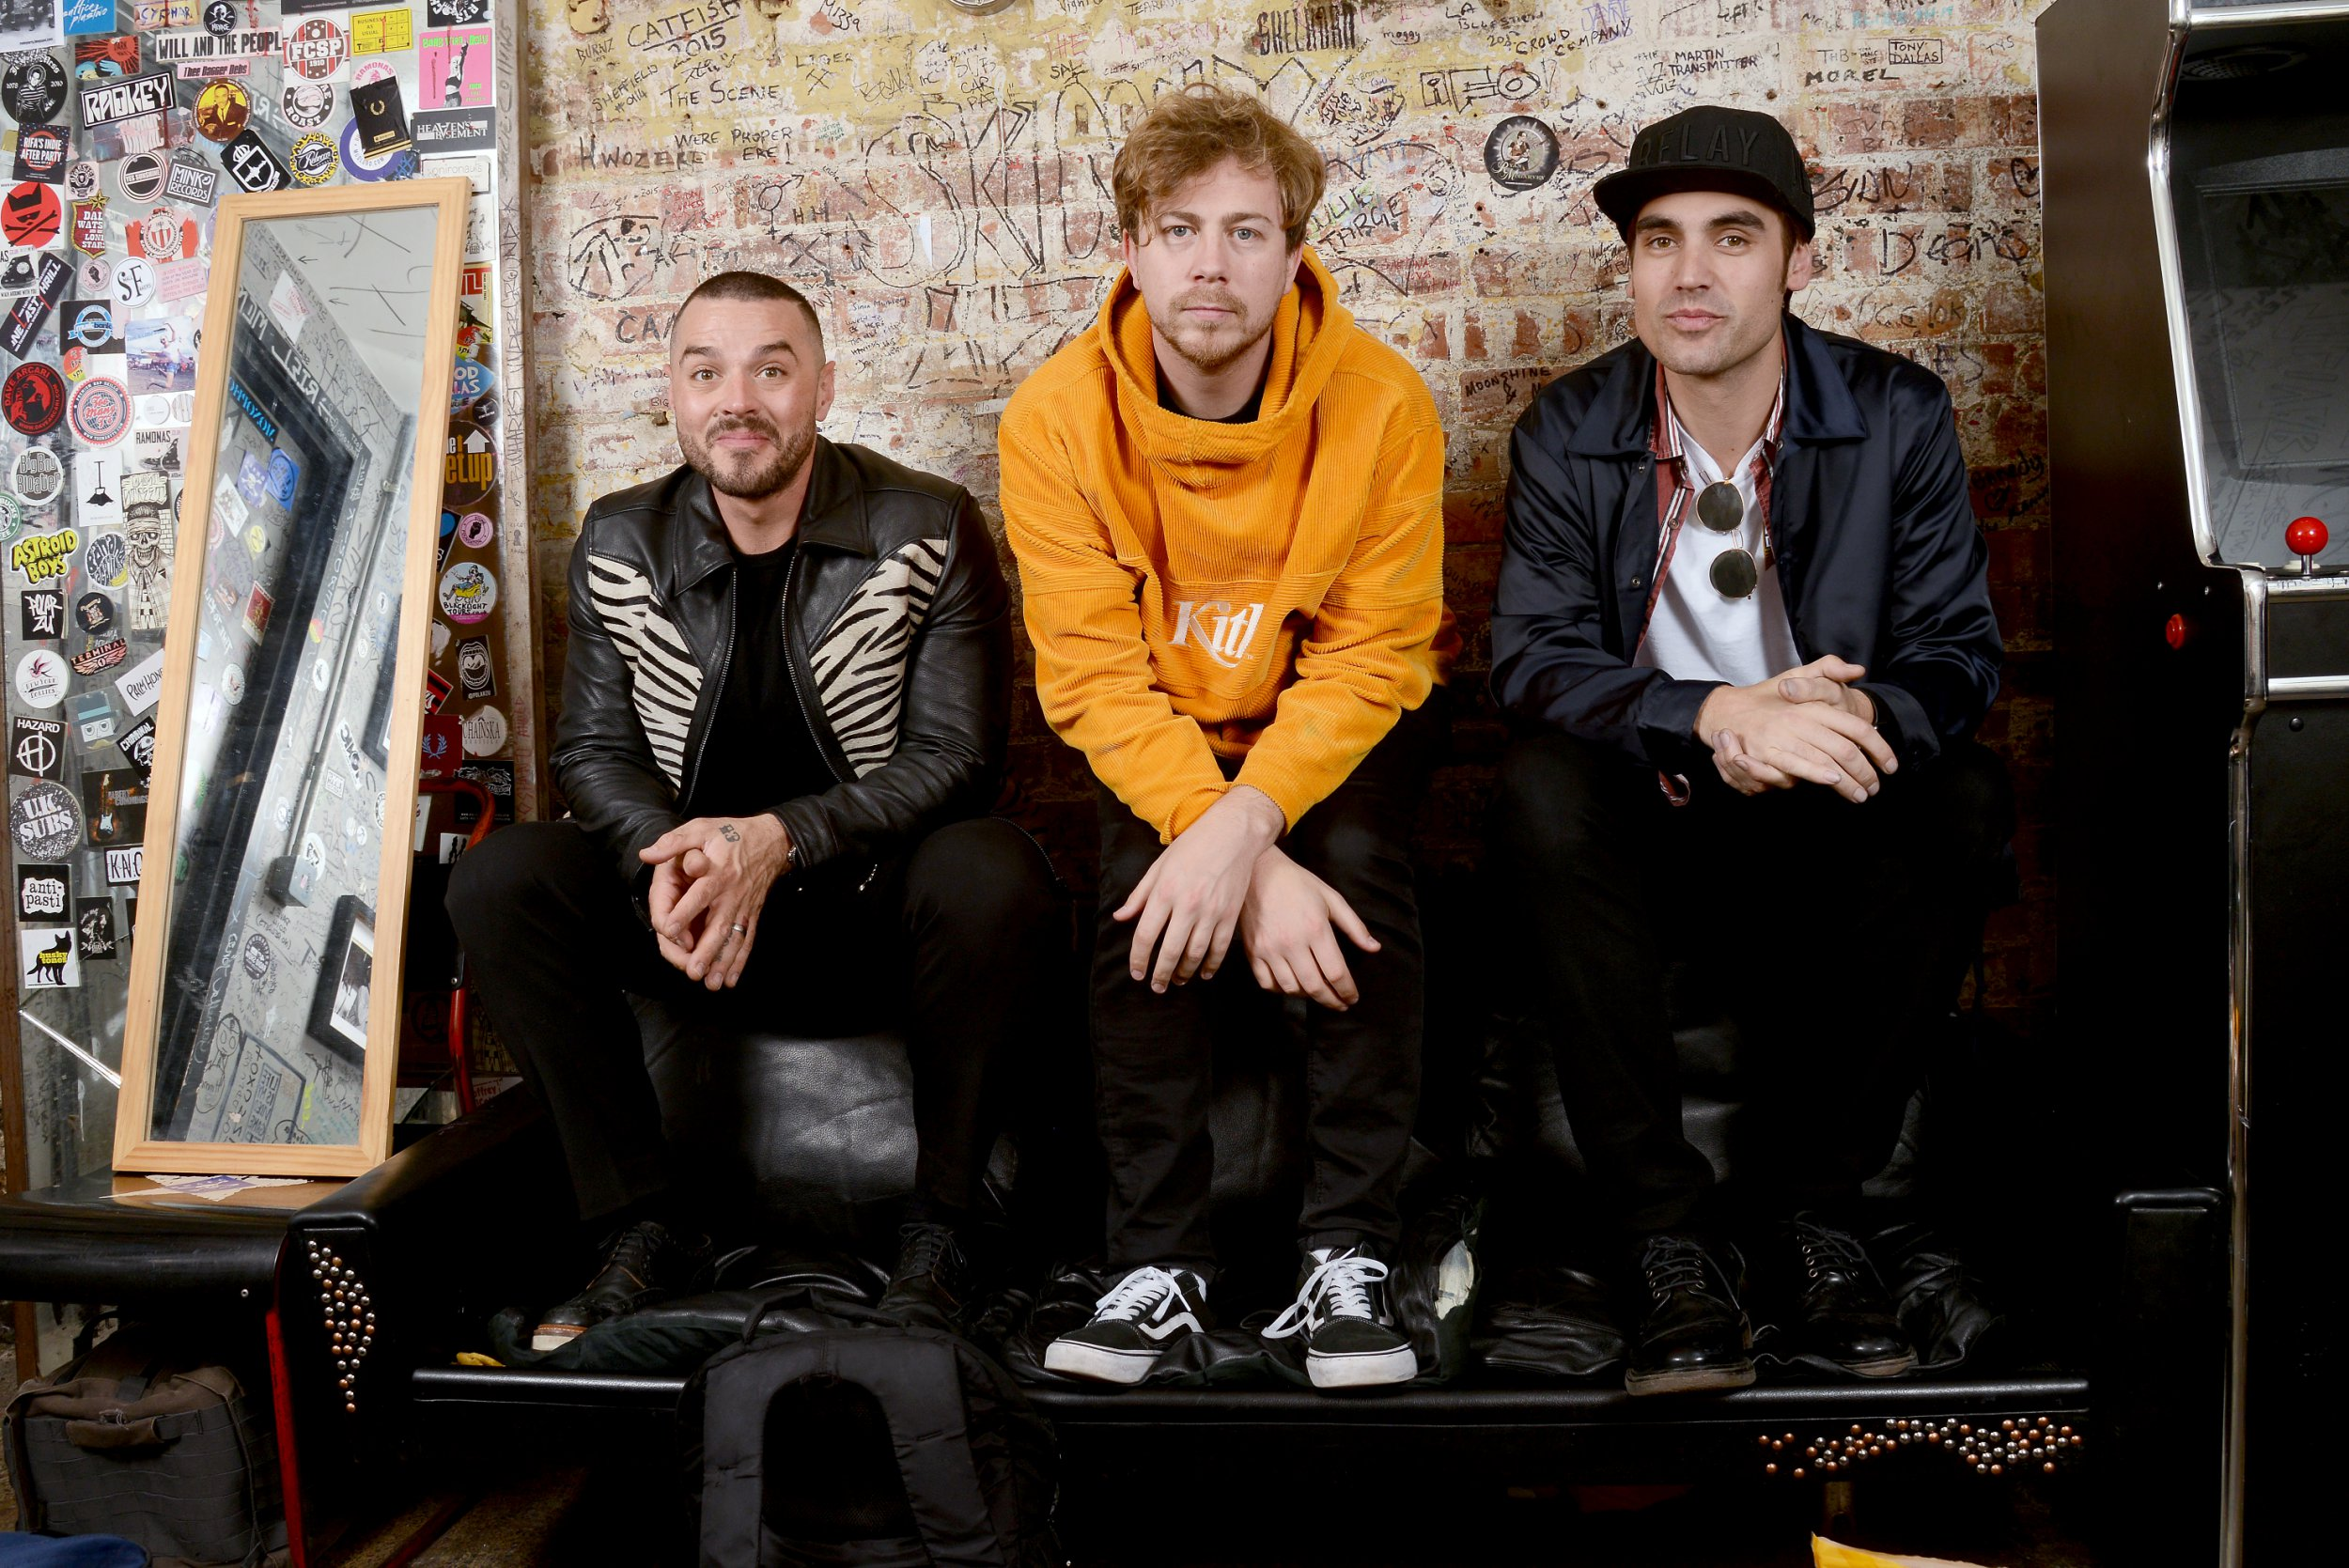 LONDON, ENGLAND - OCTOBER 29: (L-R) Matt Willis, James Bourne and Charlie Simpson of Busted backstage forward of personification their smallest gig ever during The 100 Club on Oct 29, 2018 in London, England. (Photo by Dave J Hogan/Dave J Hogan/Getty Images for Warner Music)